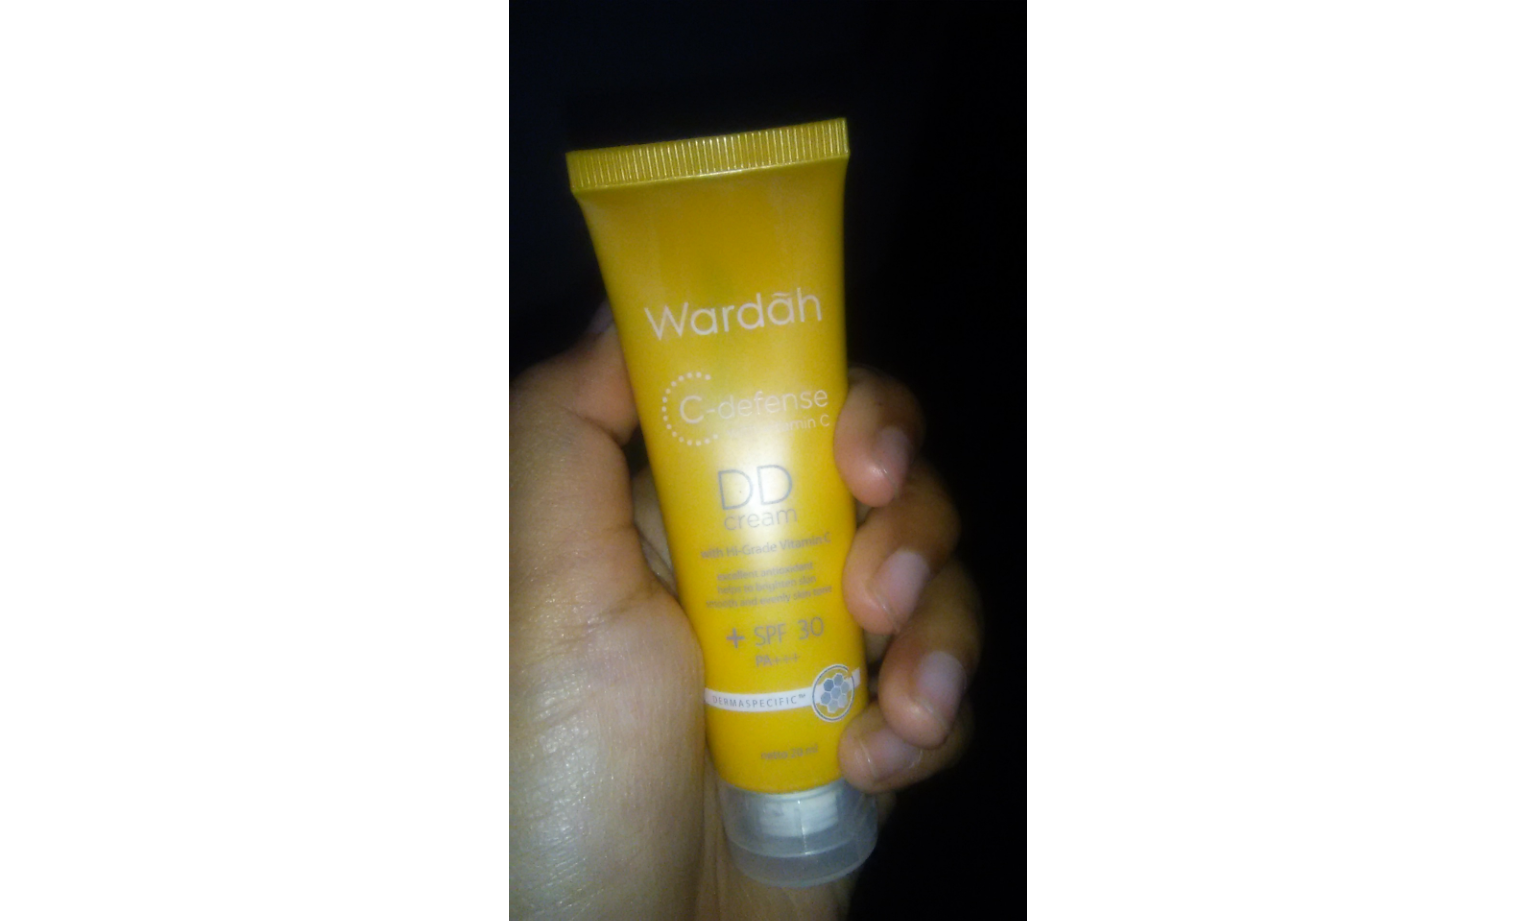 Wardah C-Defense DD Cream 20ML